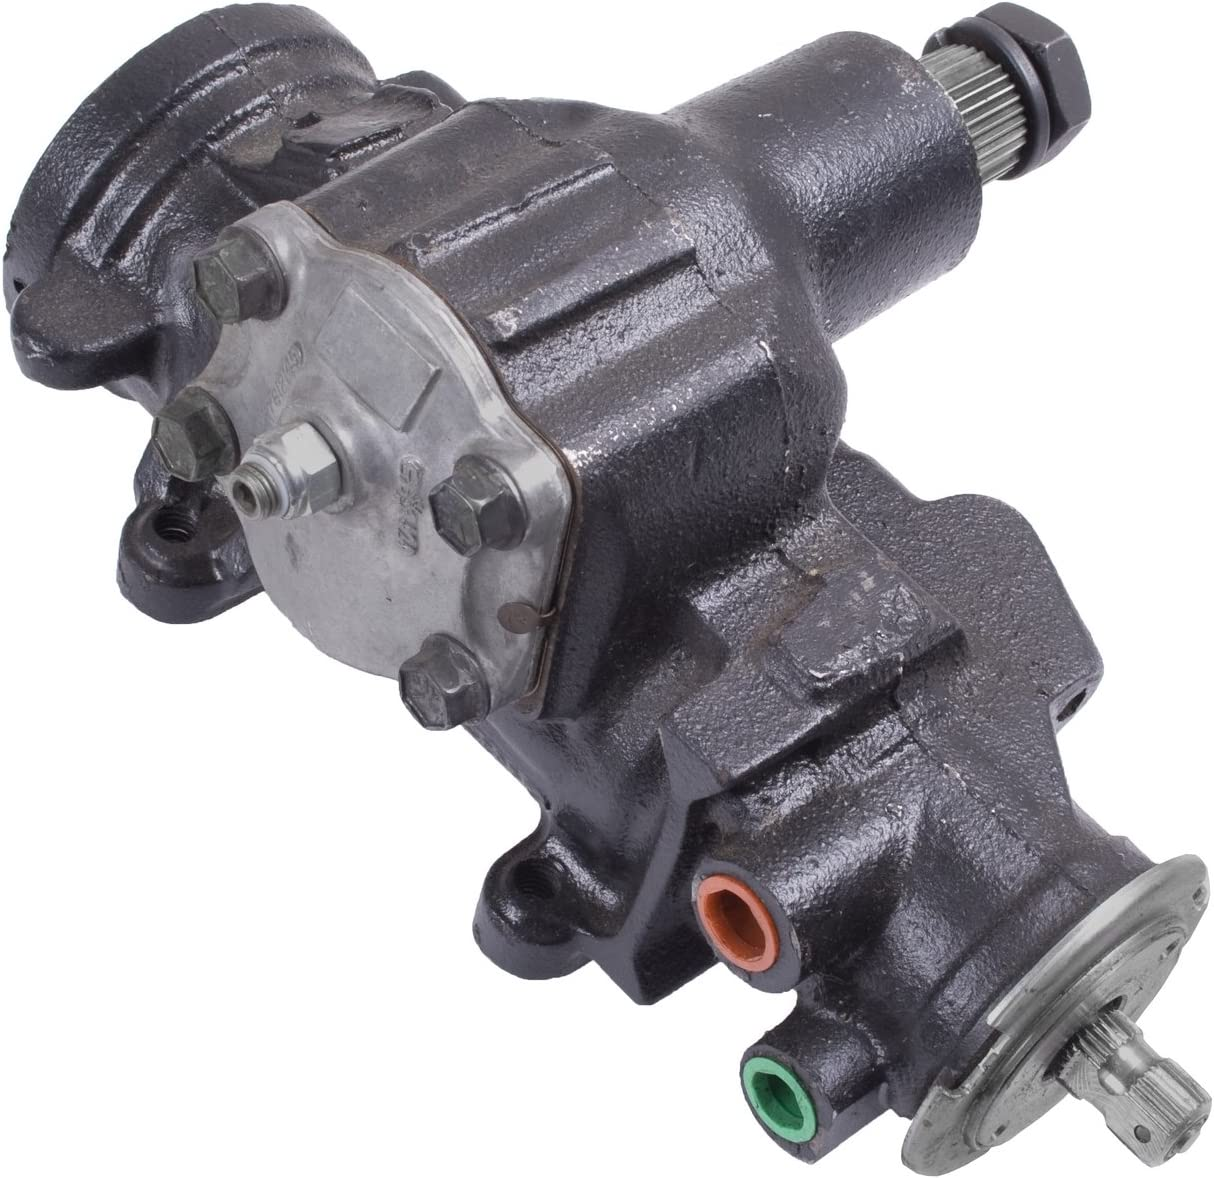 Omix-Ada 18004.02 Power Steering Gear Box for Animer and price revision Jeep YJ Wrangler High quality